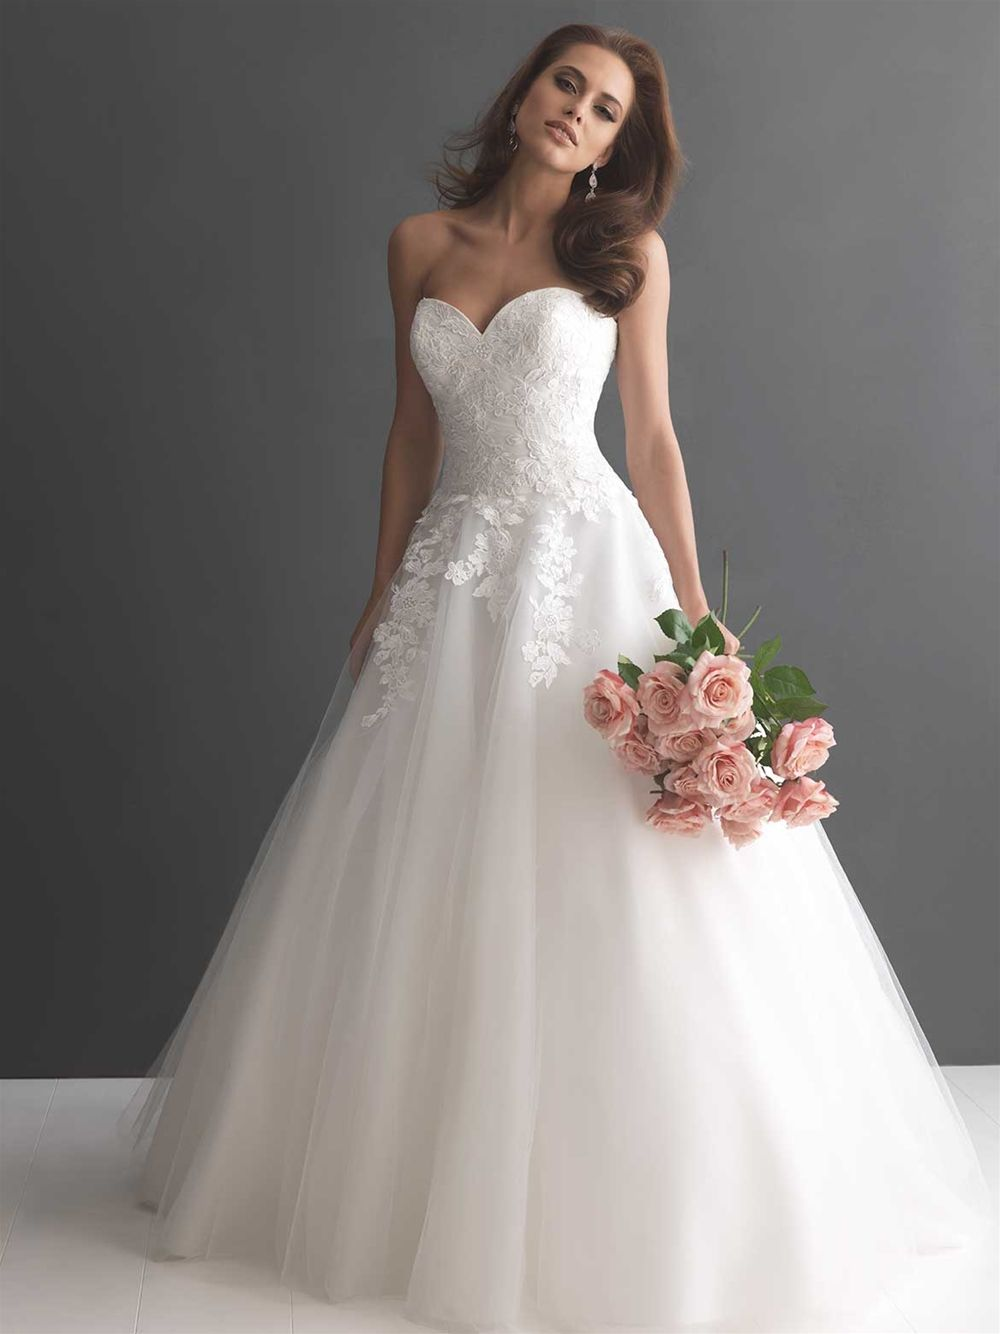 Allure bridals 2657 490 size 4 used wedding dresses allure allure bridals 2657 490 size 4 used wedding dresses ombrellifo Choice Image